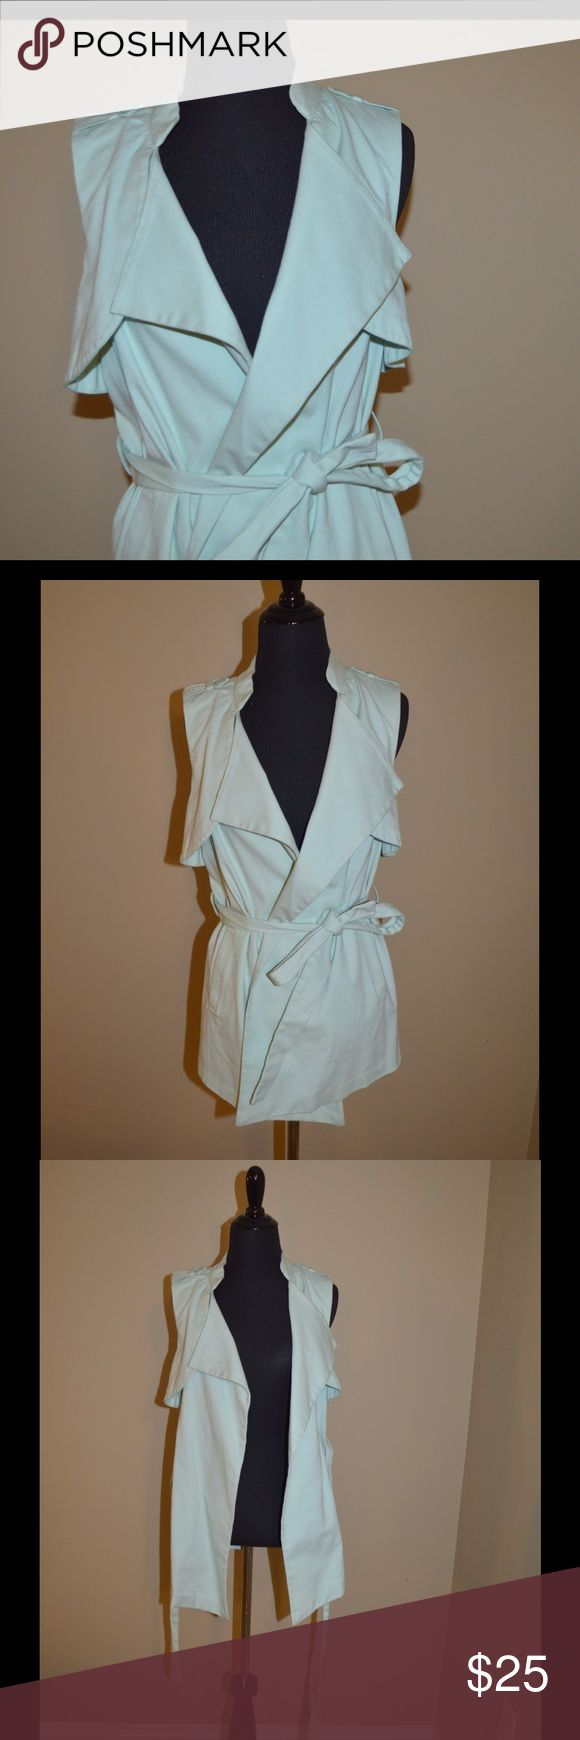 BCBG Baby blue Vest This BCBGeneration vest is beautiful. Like new condition. Ties around the stomach. Very smooth texture and comfortable. Just dry cleaned! BCBGeneration Jackets & Coats Vests